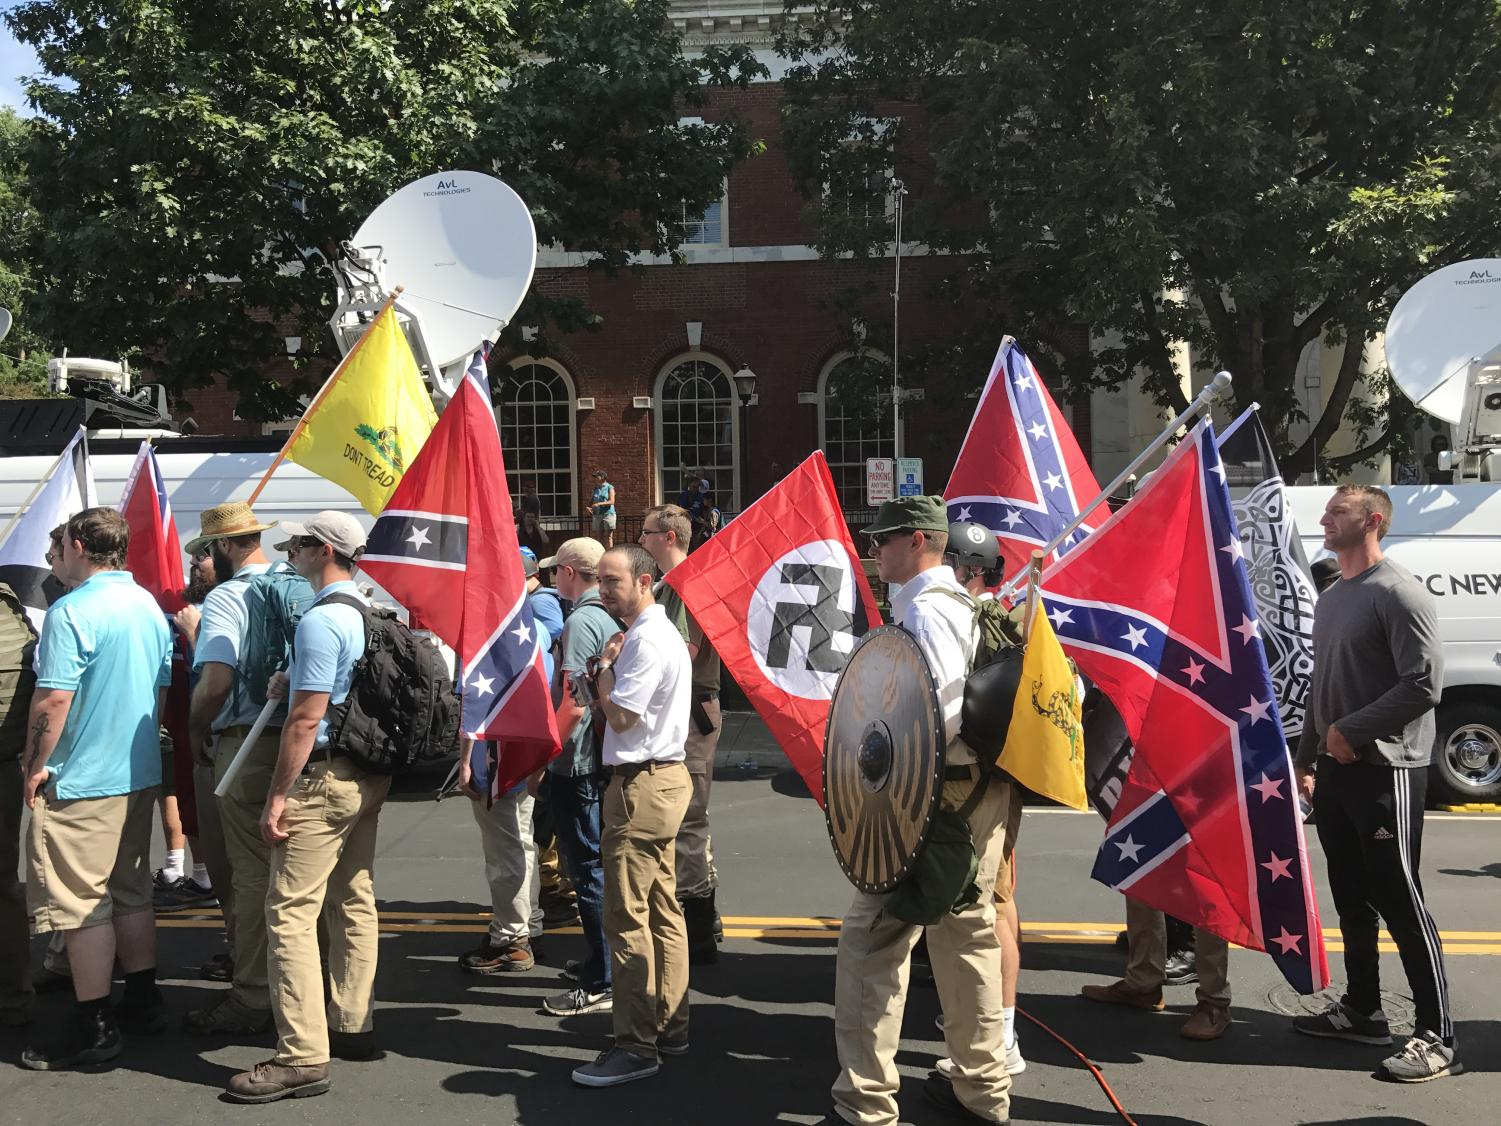 Right-wing protesters at Charlottesville, VA.